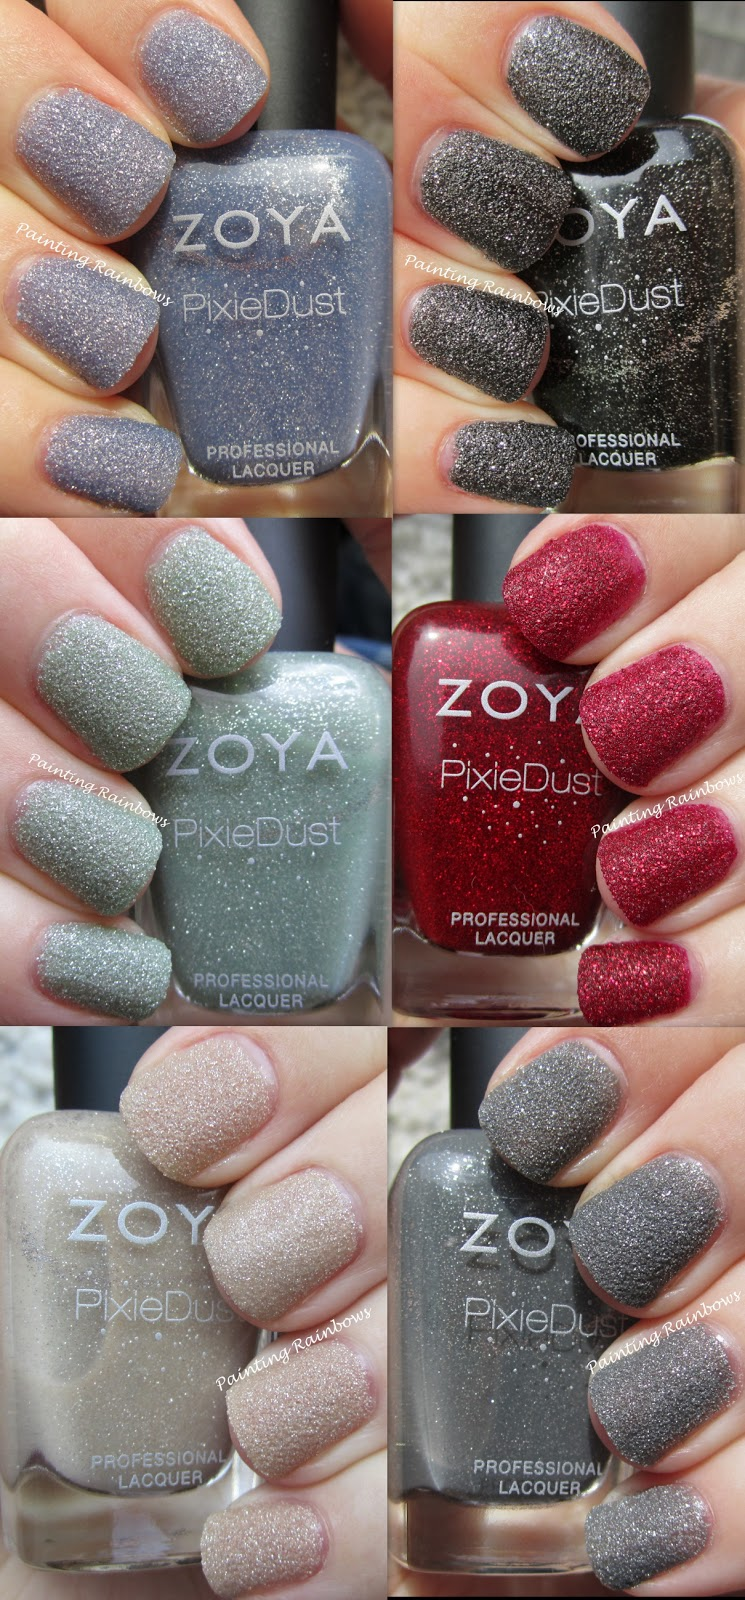 Pretty In Paint: Zoya Summer Pixie Dust Collection